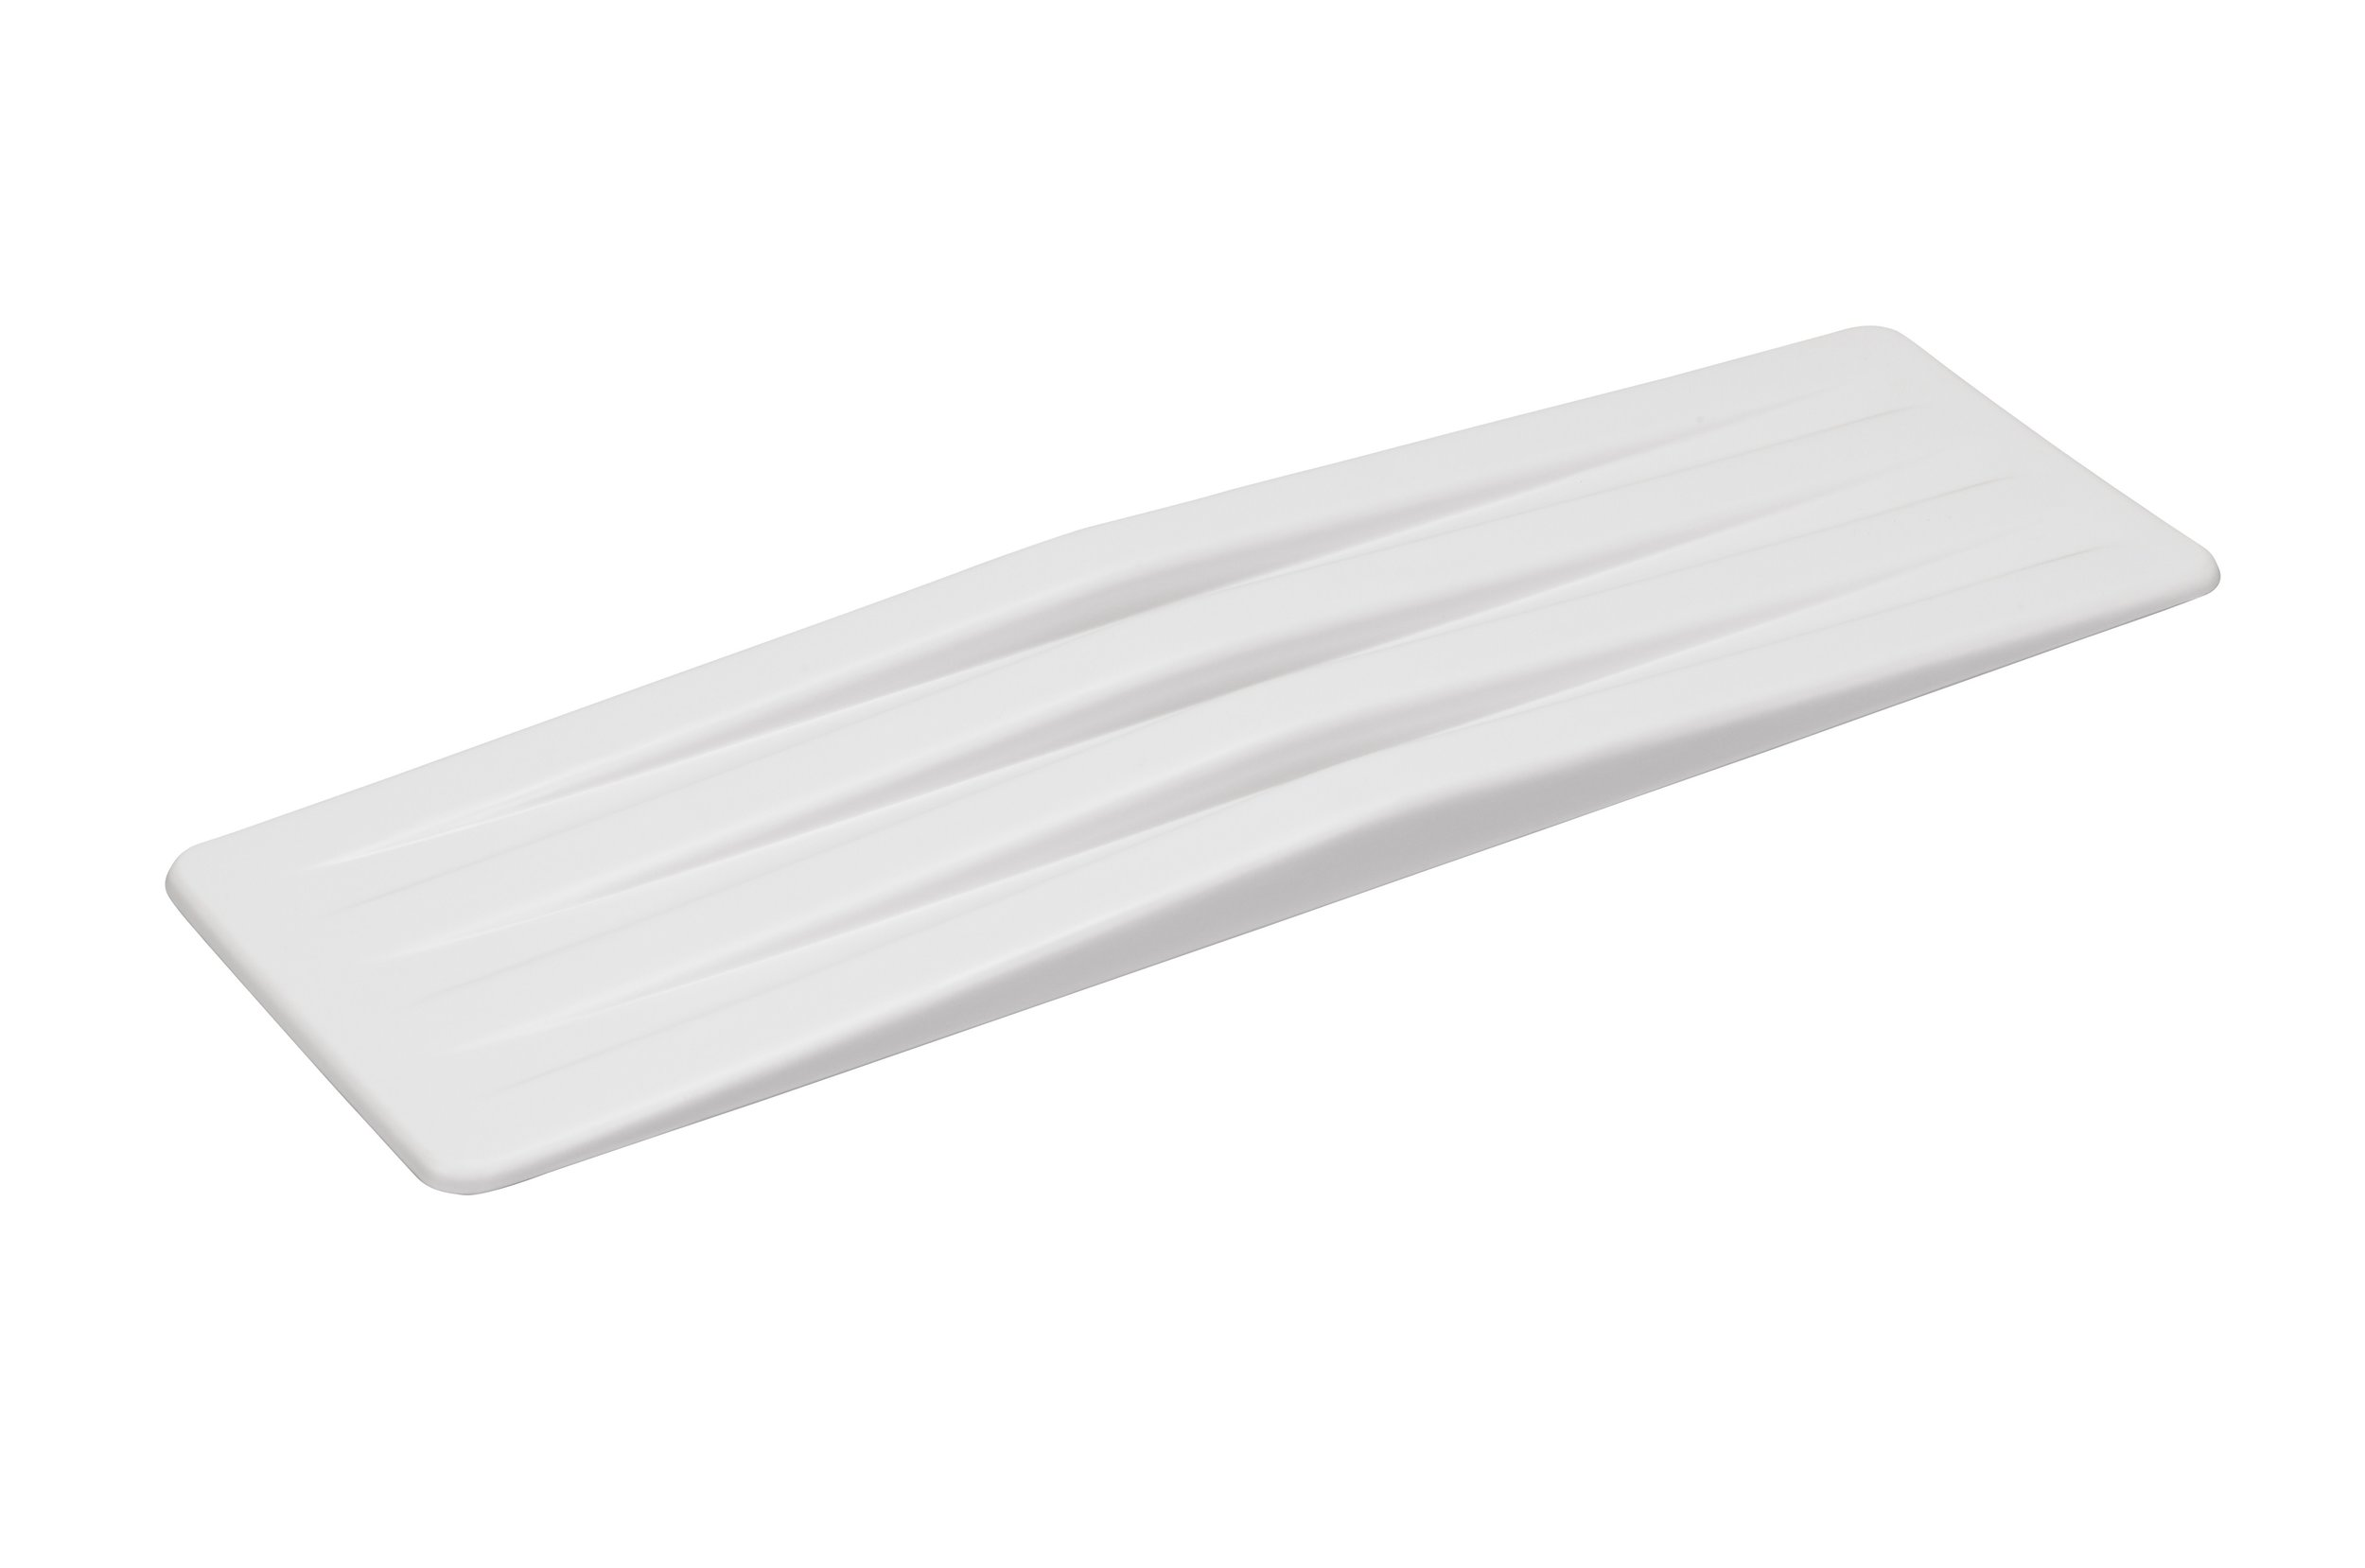 Transfer Board - Plastic Transfer Board, 8 X 27-1/2 Use to transfer from bed, wheelchair, chair or commode Constructed of heavy-duty white plastic Lightweight 8 x 27-1/2$65.00